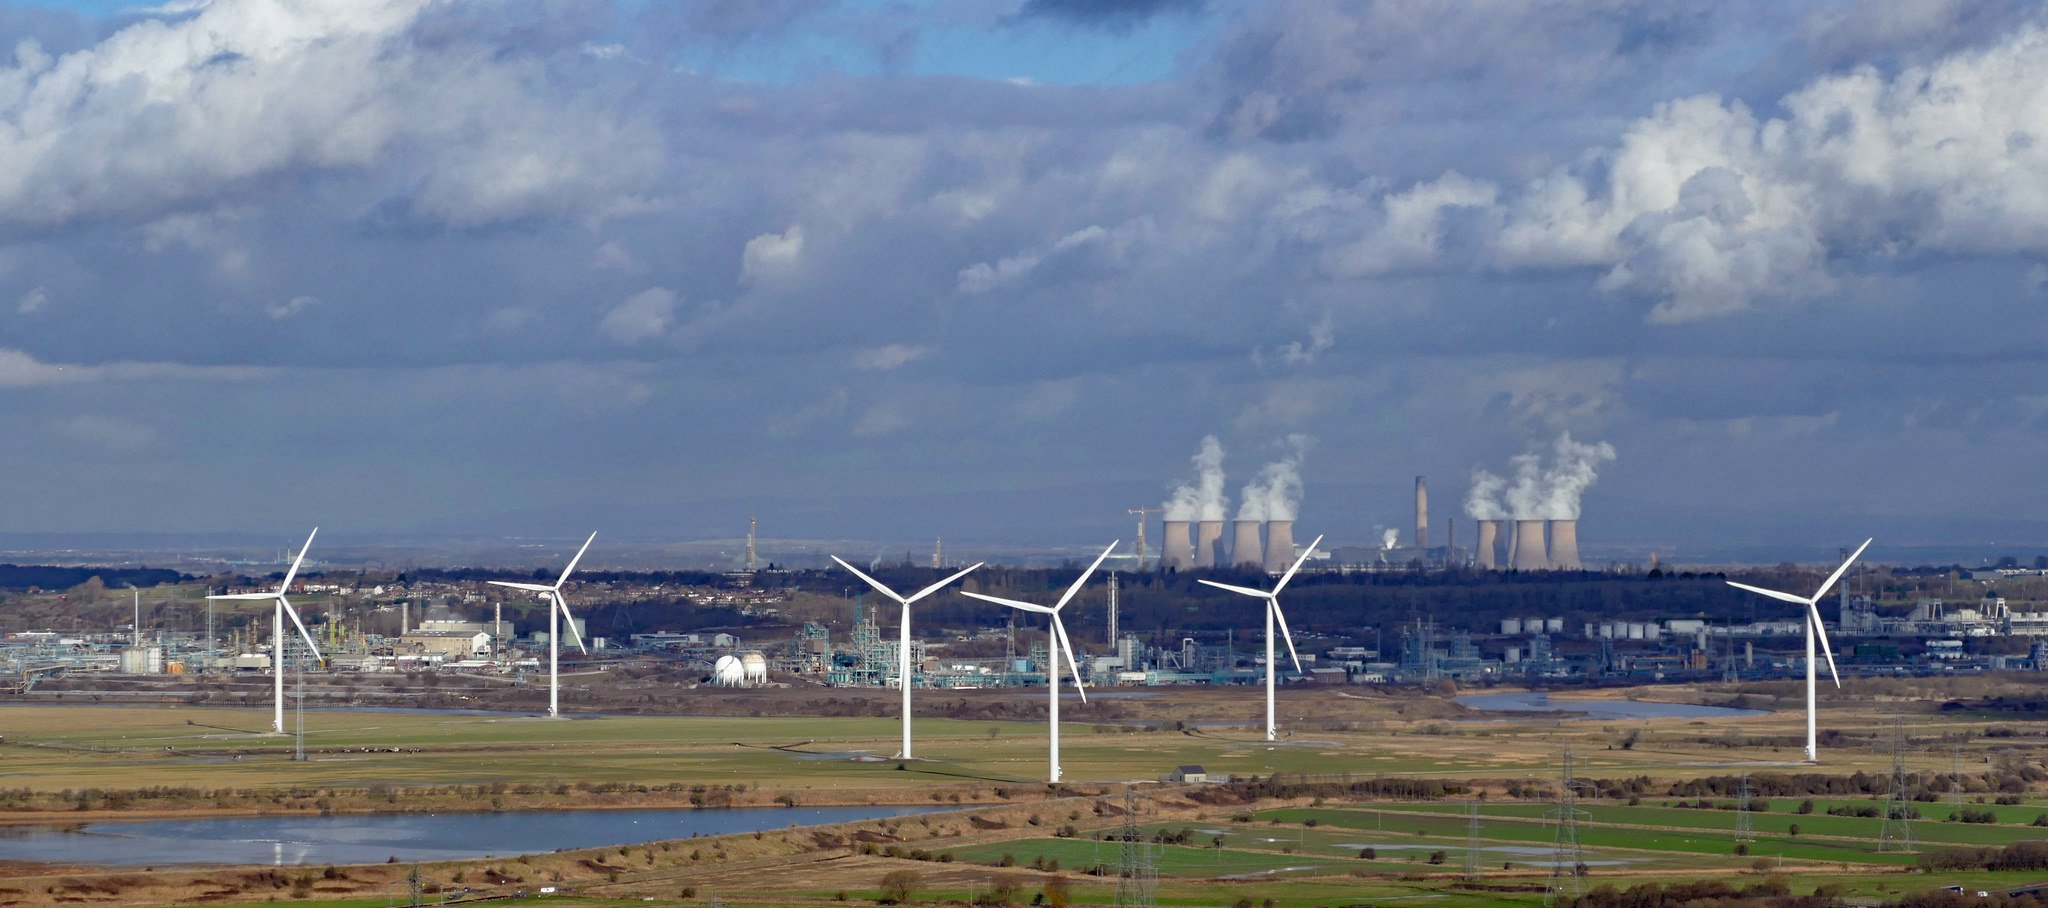 Wind and Coal Power UK CO2 Carbon Dioxide Coal Emissions 1890 Record Carbon Brief Department of Business, Energy and Industrial Strategy Wind Climate Change Act Paris Agreement Britain Renewable Energy James Hitchings-Hales